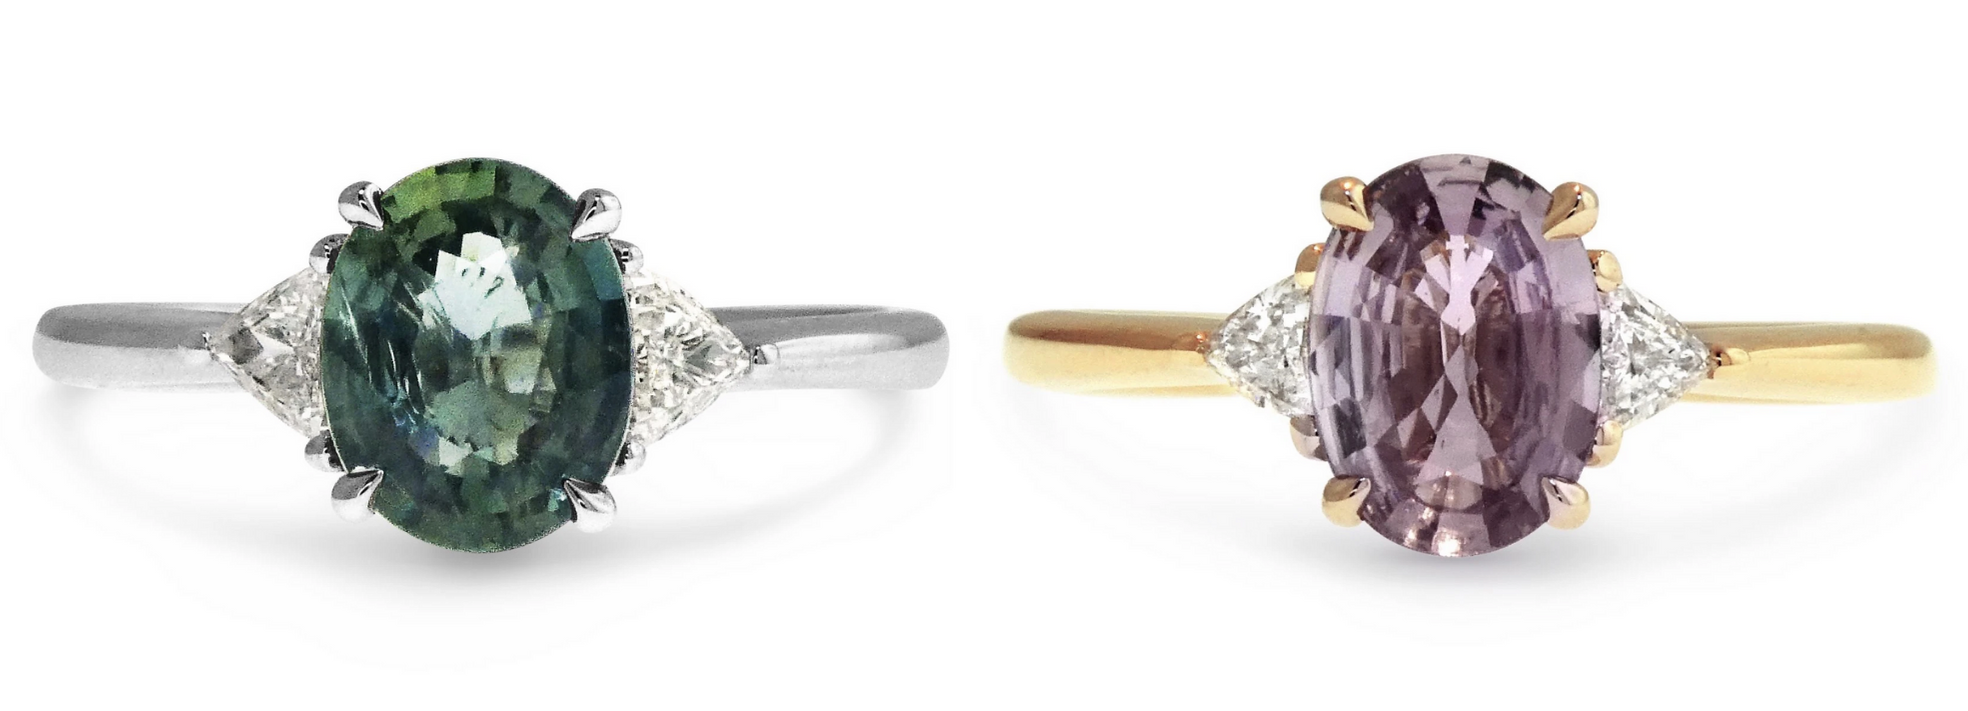 Cheryl and Apryl three-stone oval sapphire engagement rings